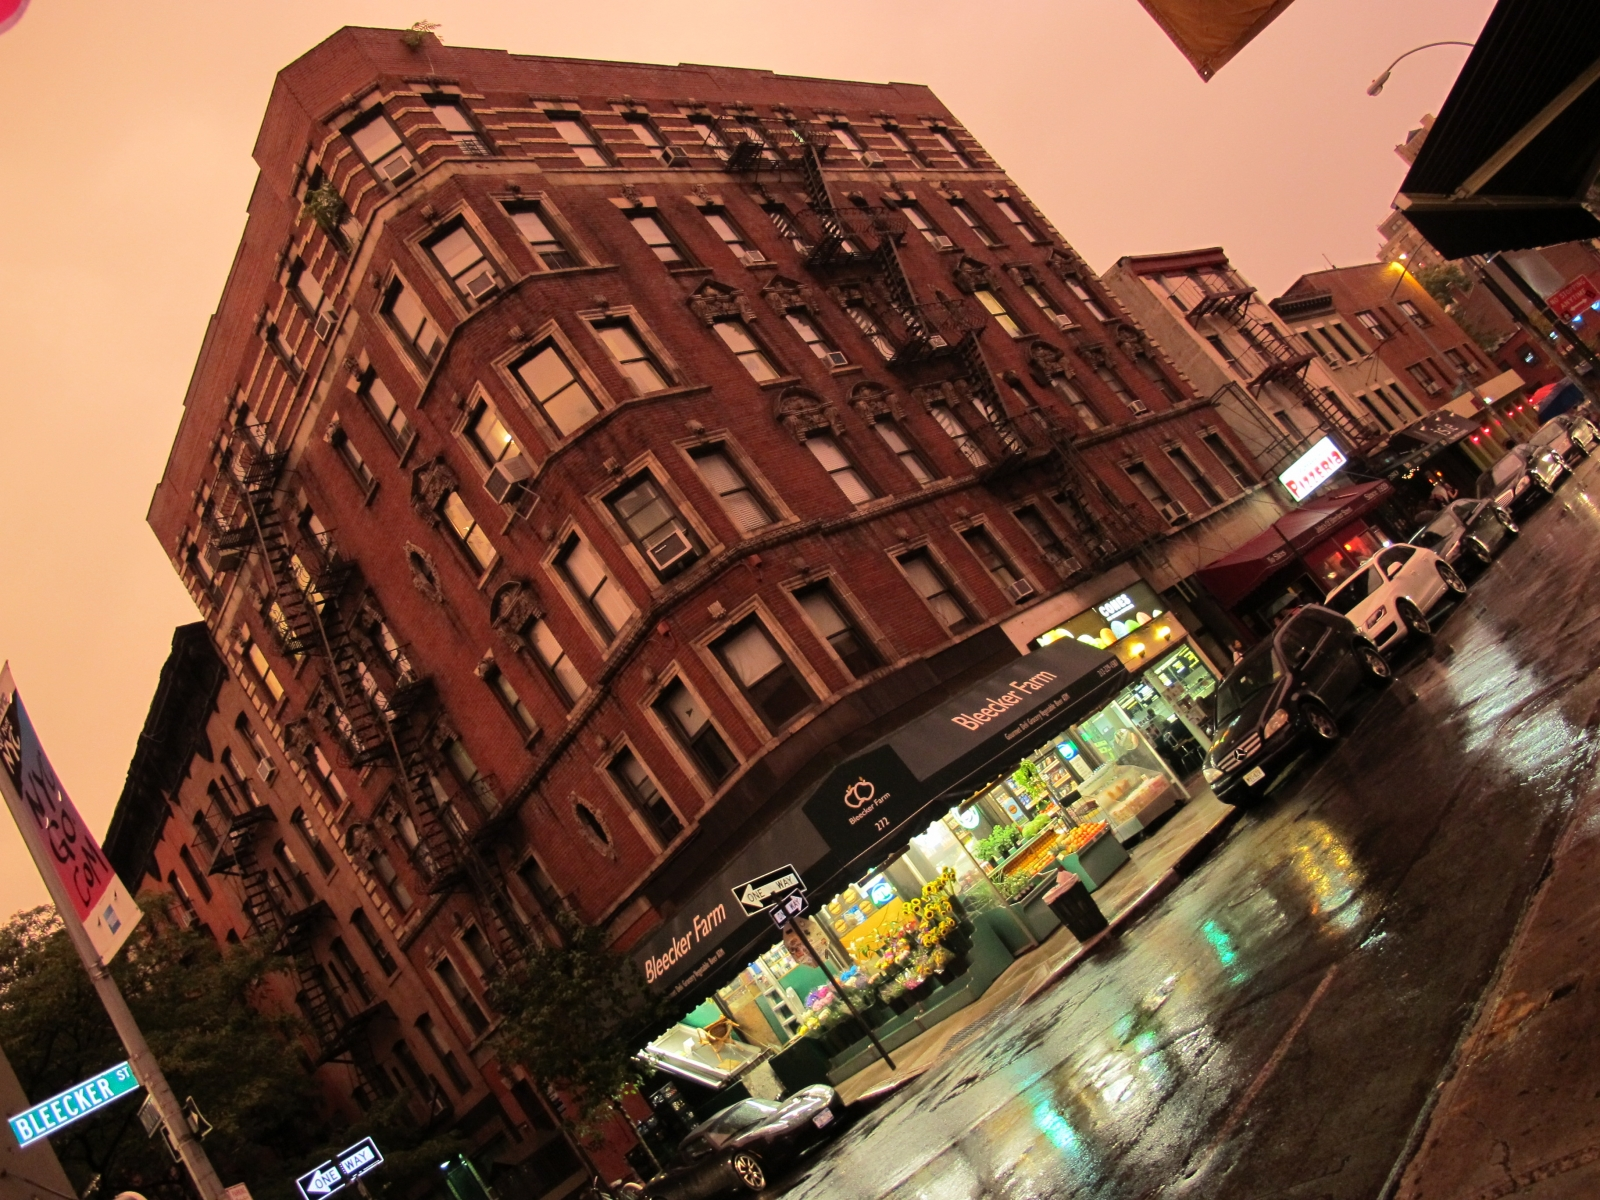 Rainy Night in SoHo